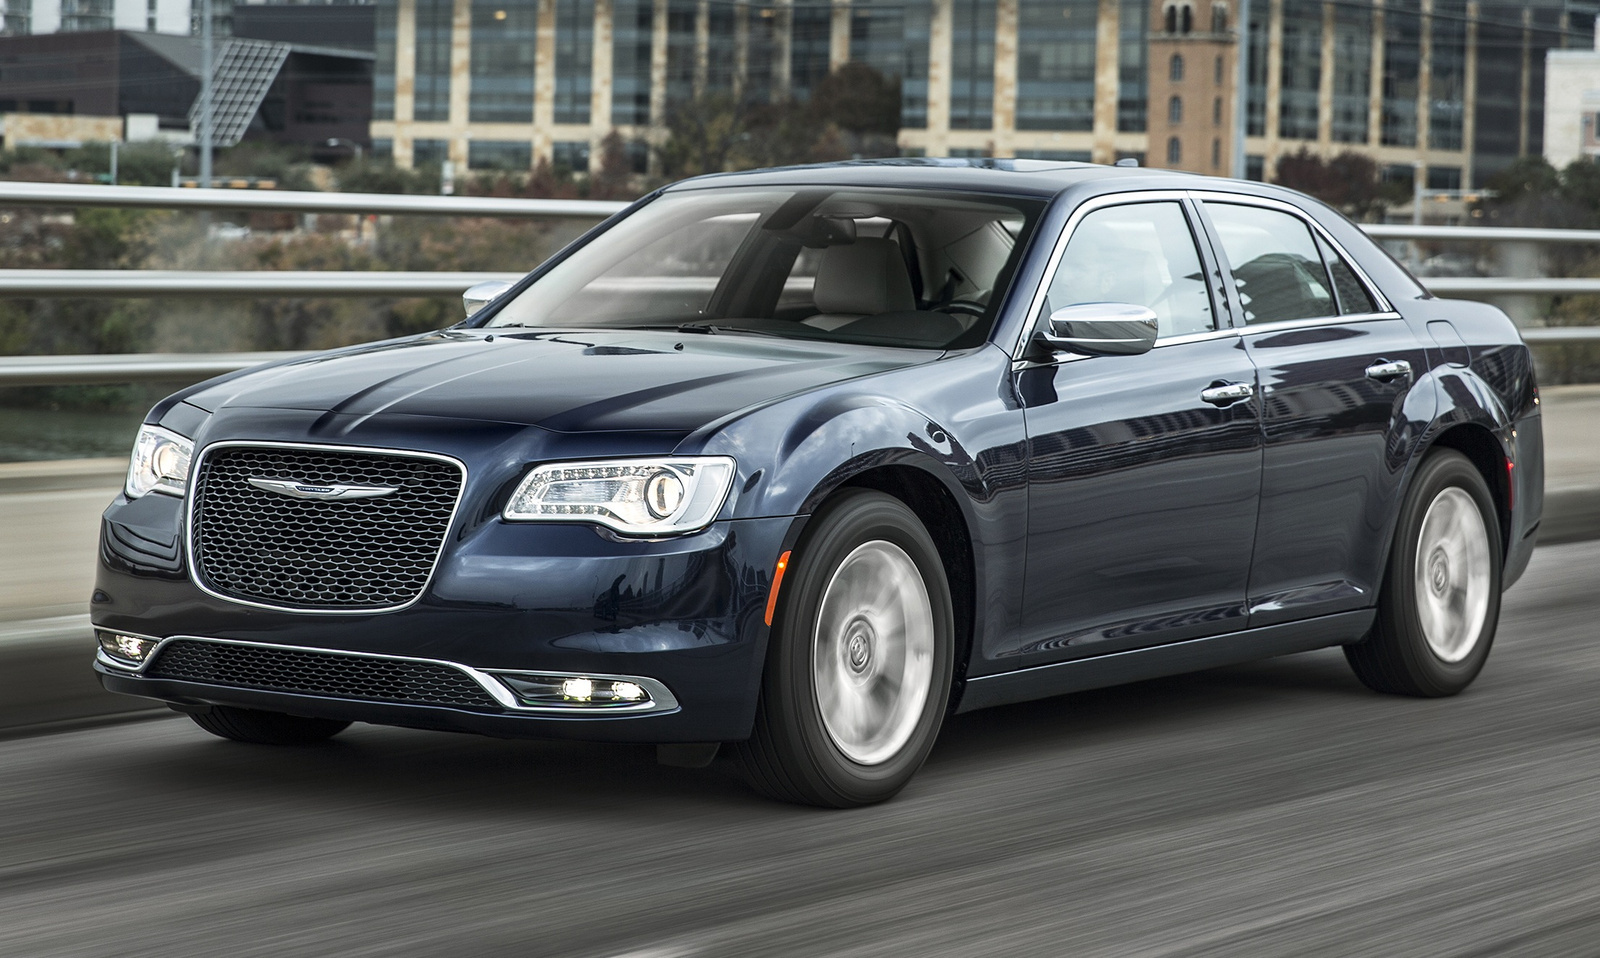 Cars for big families: The Chrysler 300 safely accommodates 3 child seats together in the second row